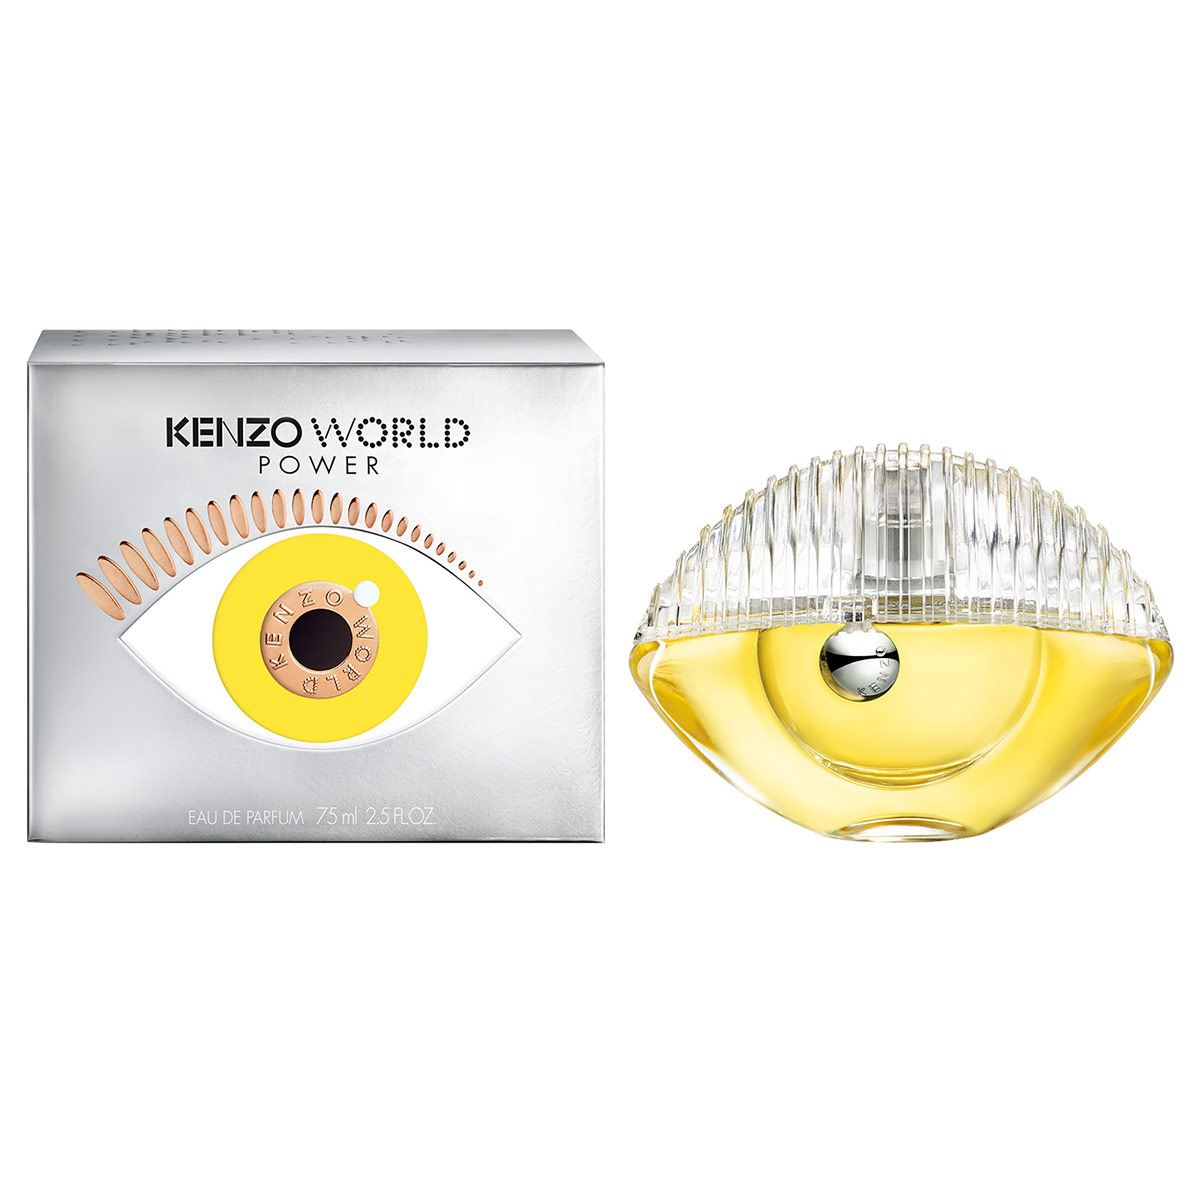 Fragancia para Dama Kenzo World Power EDP 75 ml